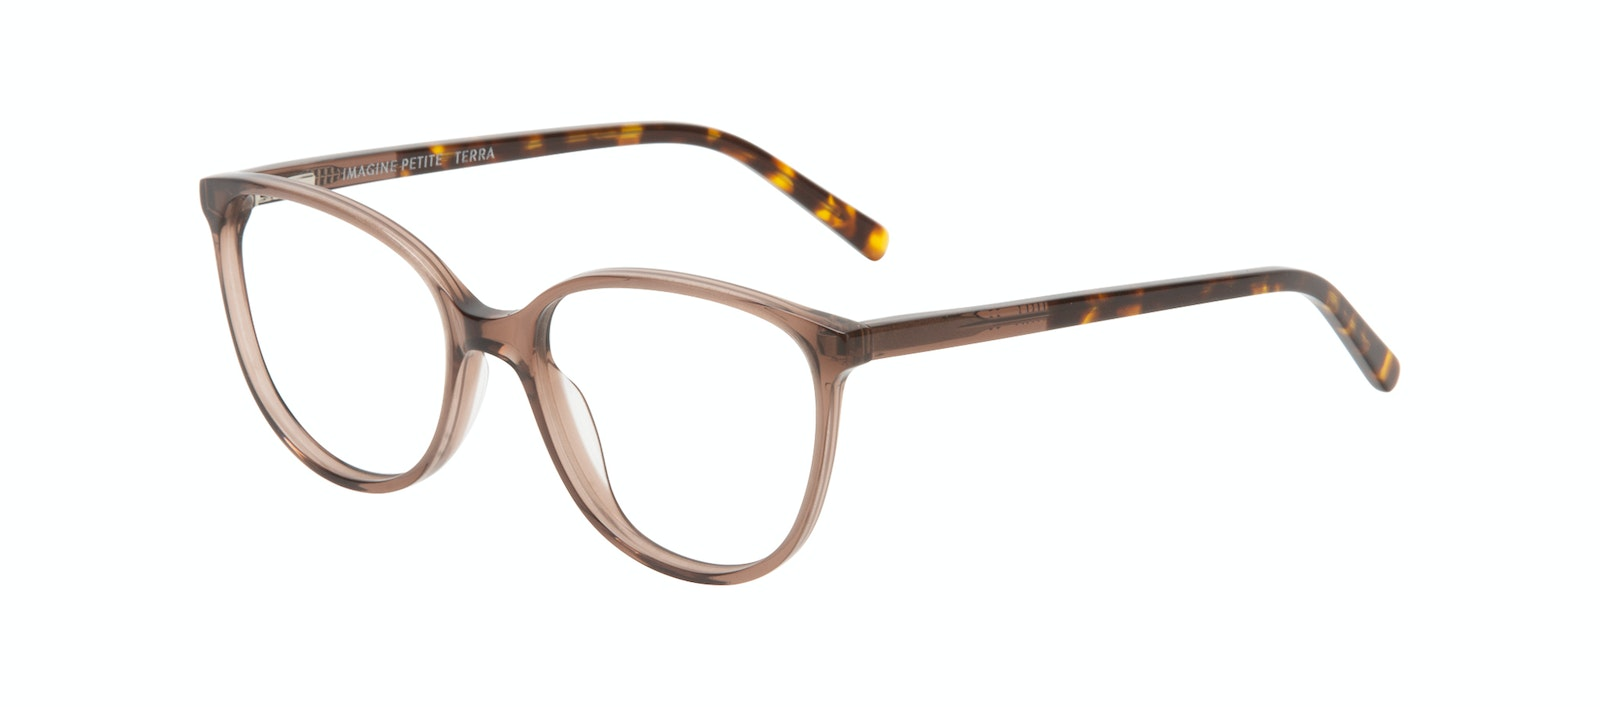 f4450bd7850a Affordable Fashion Glasses Round Eyeglasses Women Imagine Petite Terra Tilt